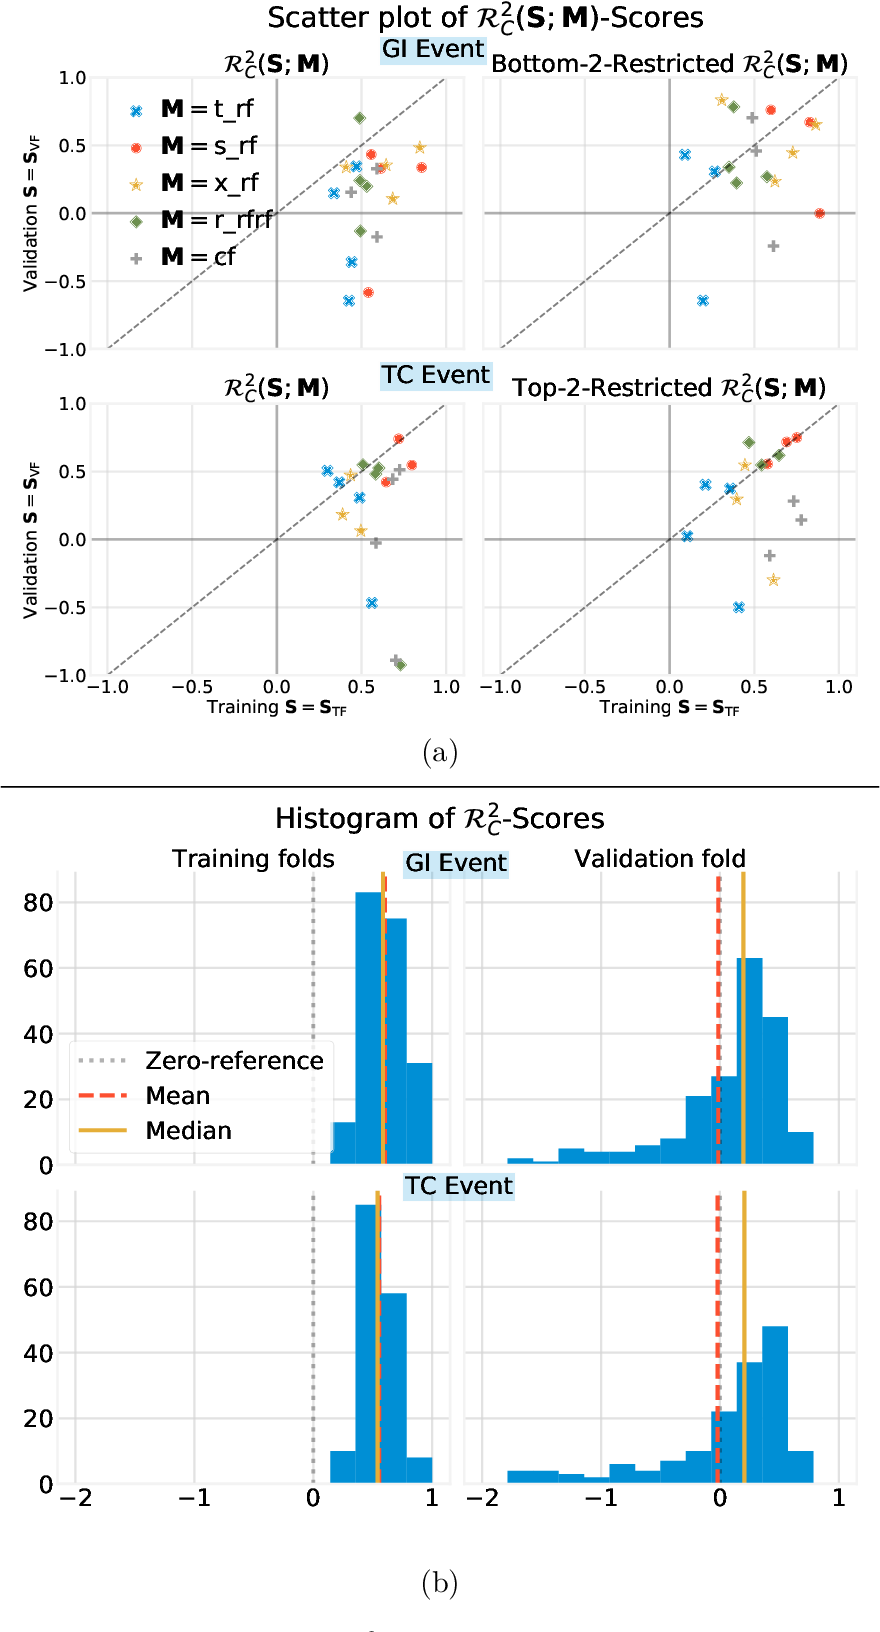 Figure 3 for Stable discovery of interpretable subgroups via calibration in causal studies